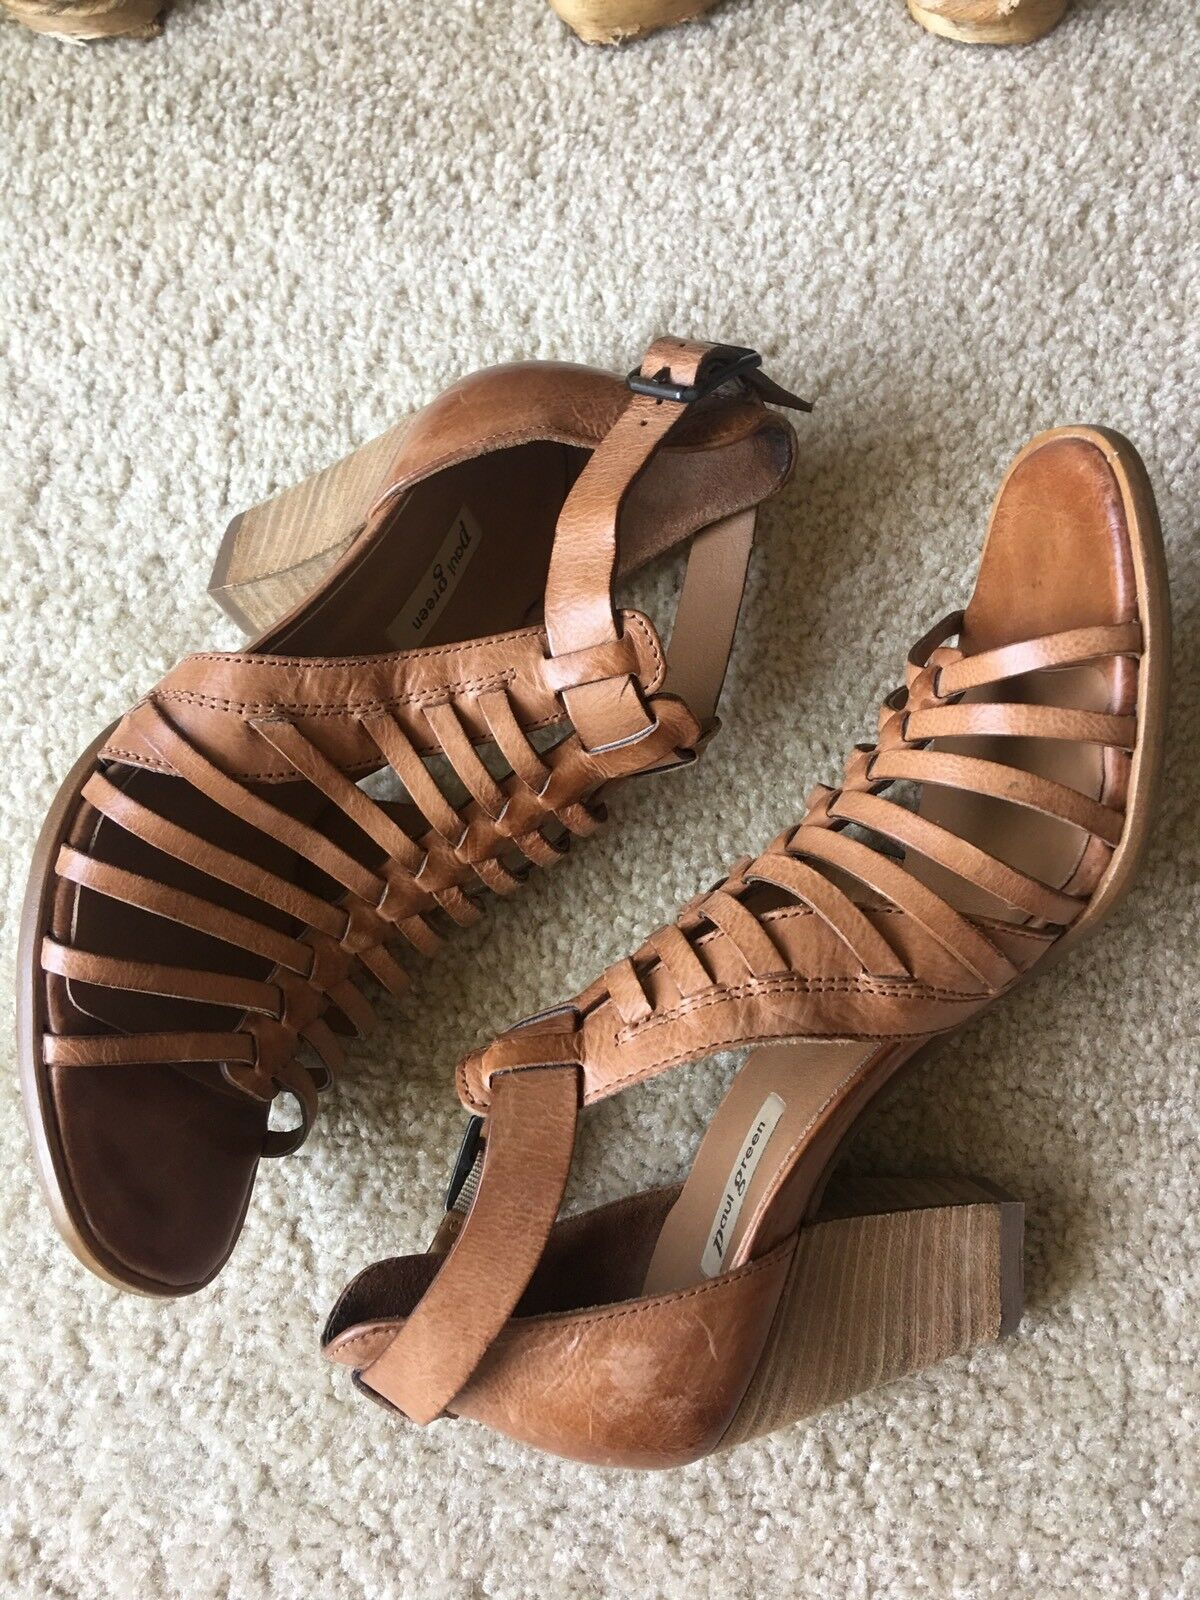 339 Paul verde  Christy  Tan Leather Strappy Sandals Heels Sz 36  UK3 1 2